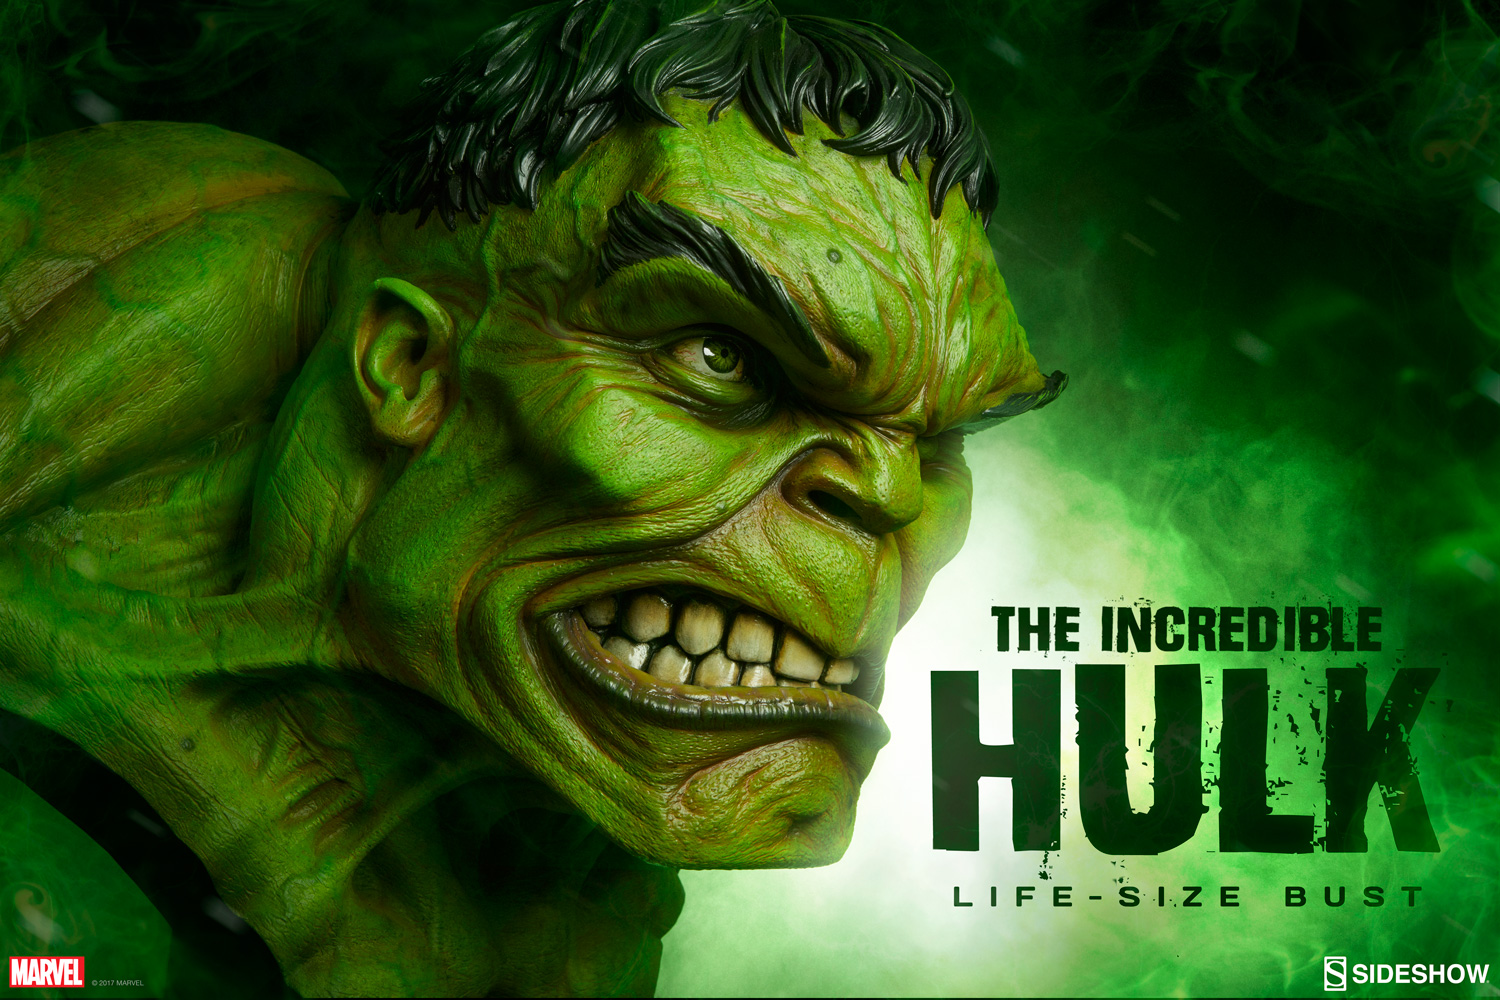 Wallpapers Hd Hulk Pre Order The Hulk Life Size Bust From Sideshow The